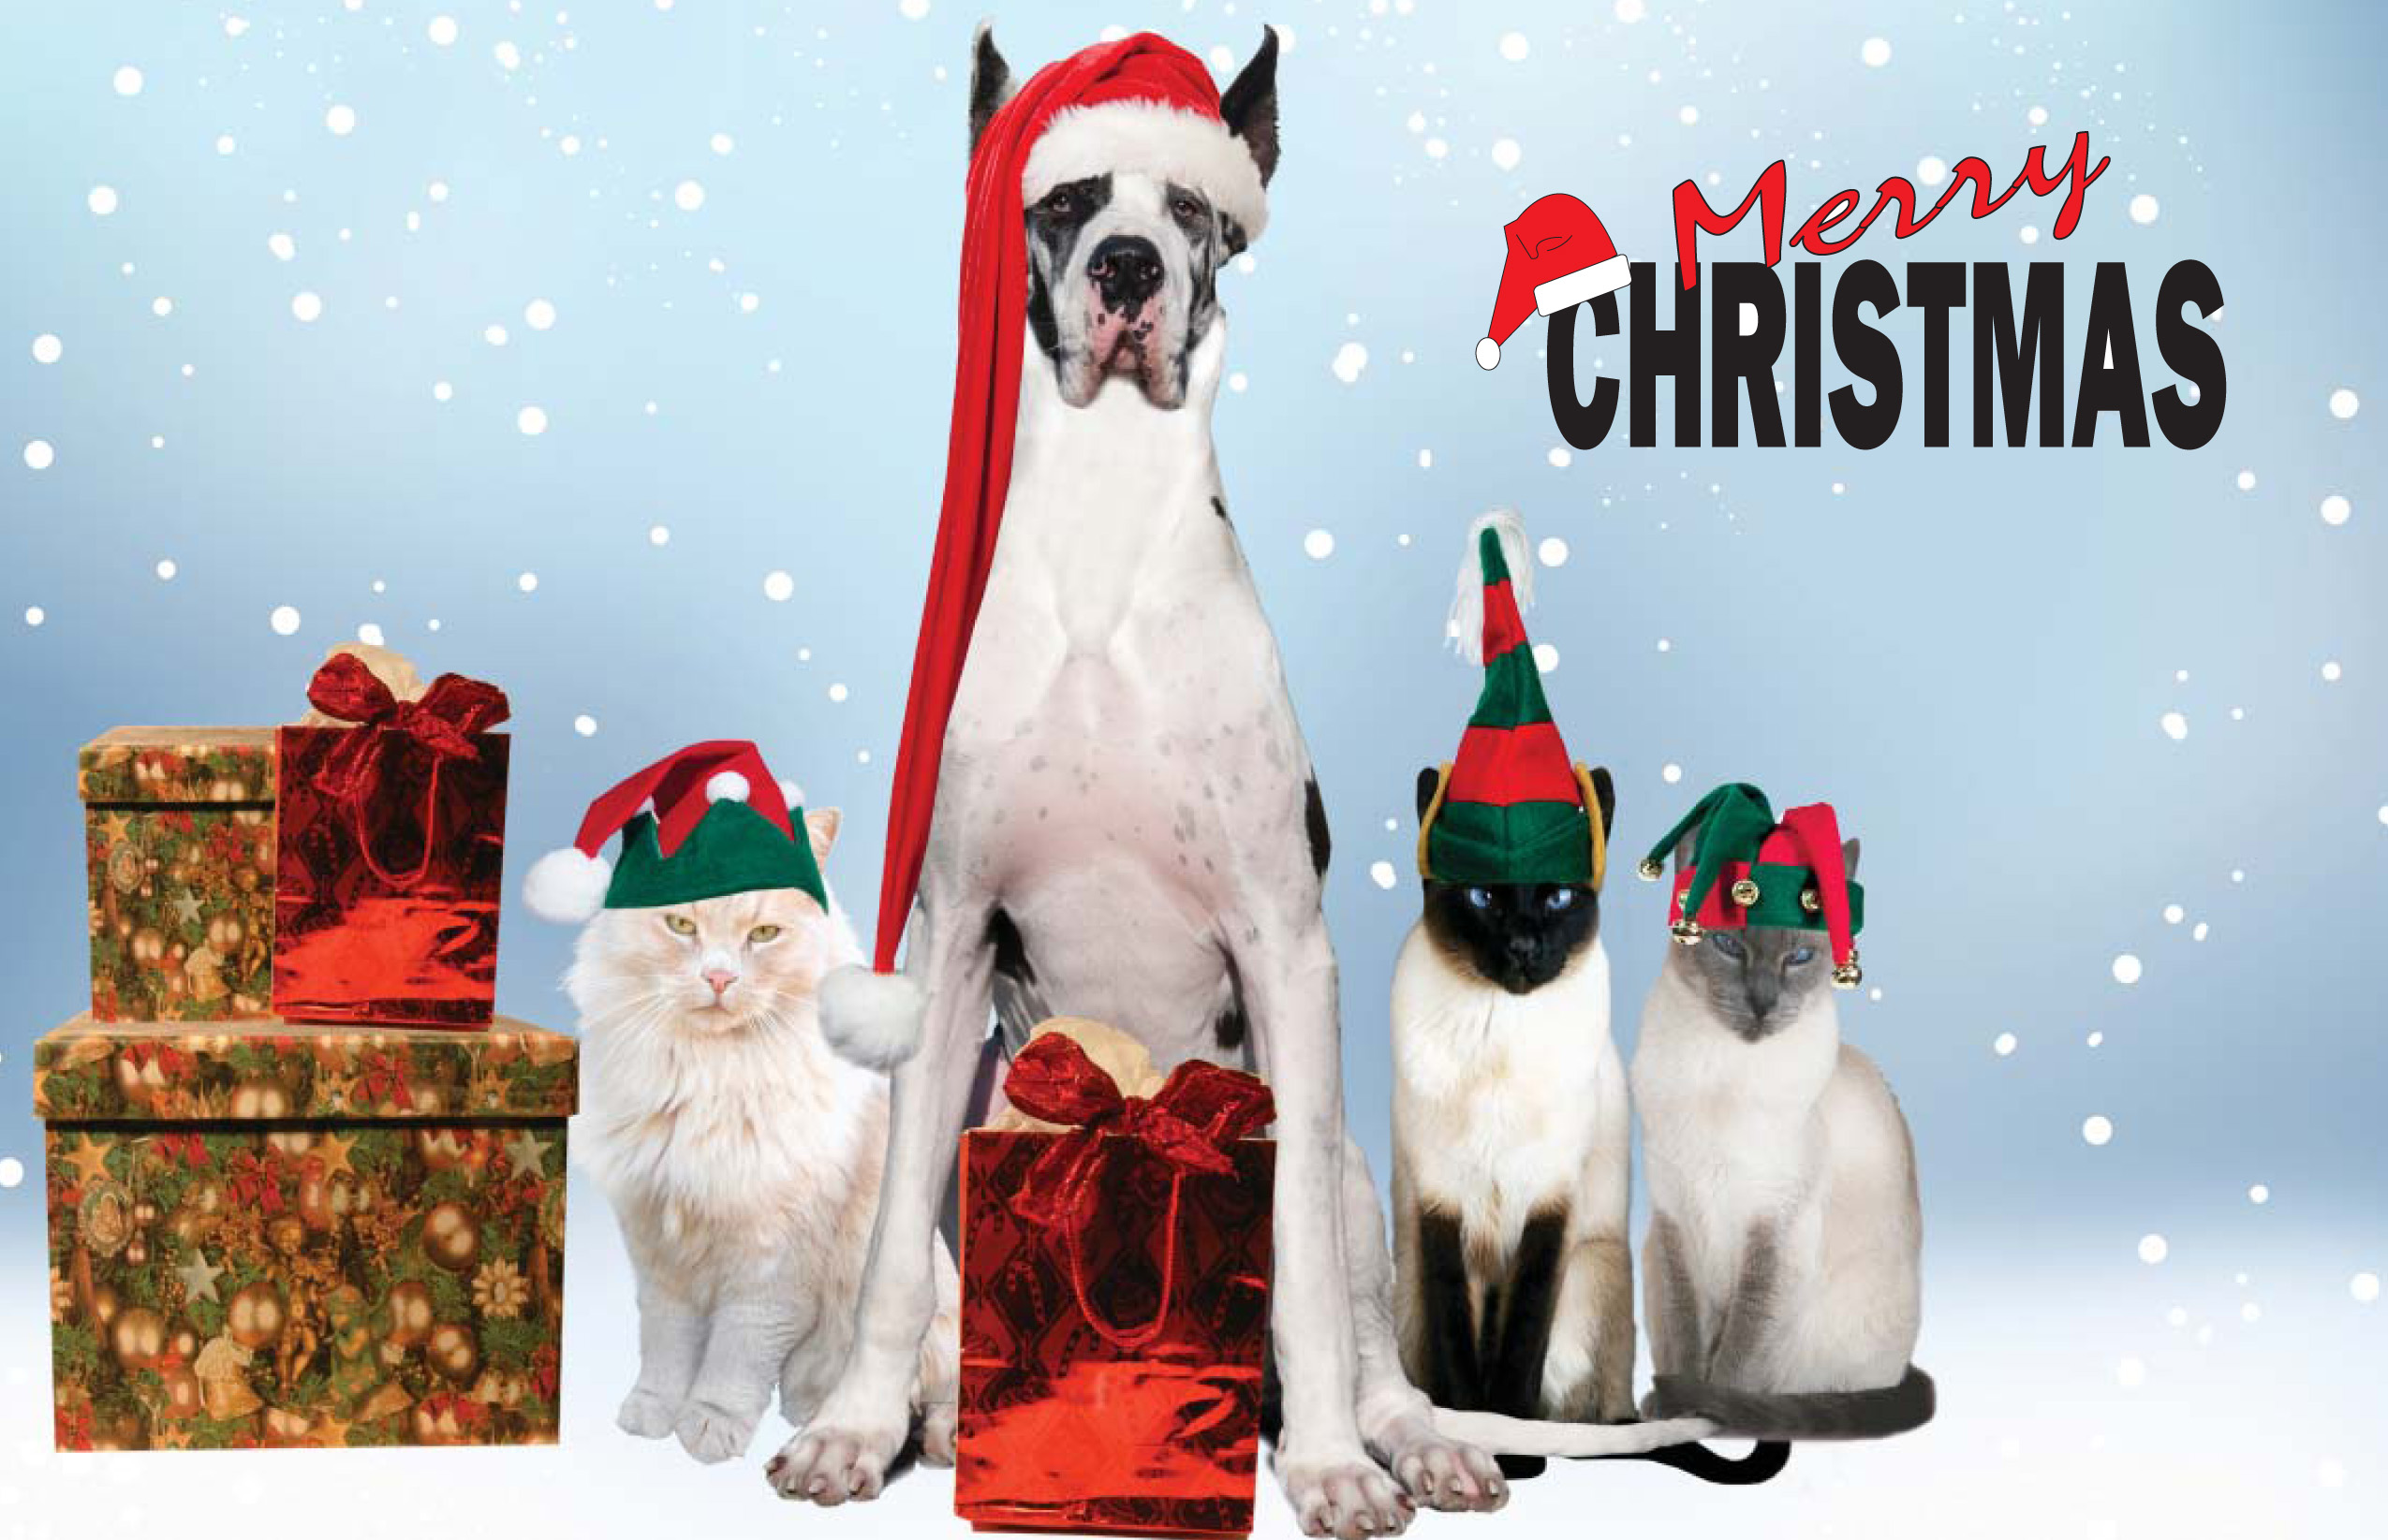 merry christmas images with animals let us send your holiday cards this year meals wheels of tarrant county blog